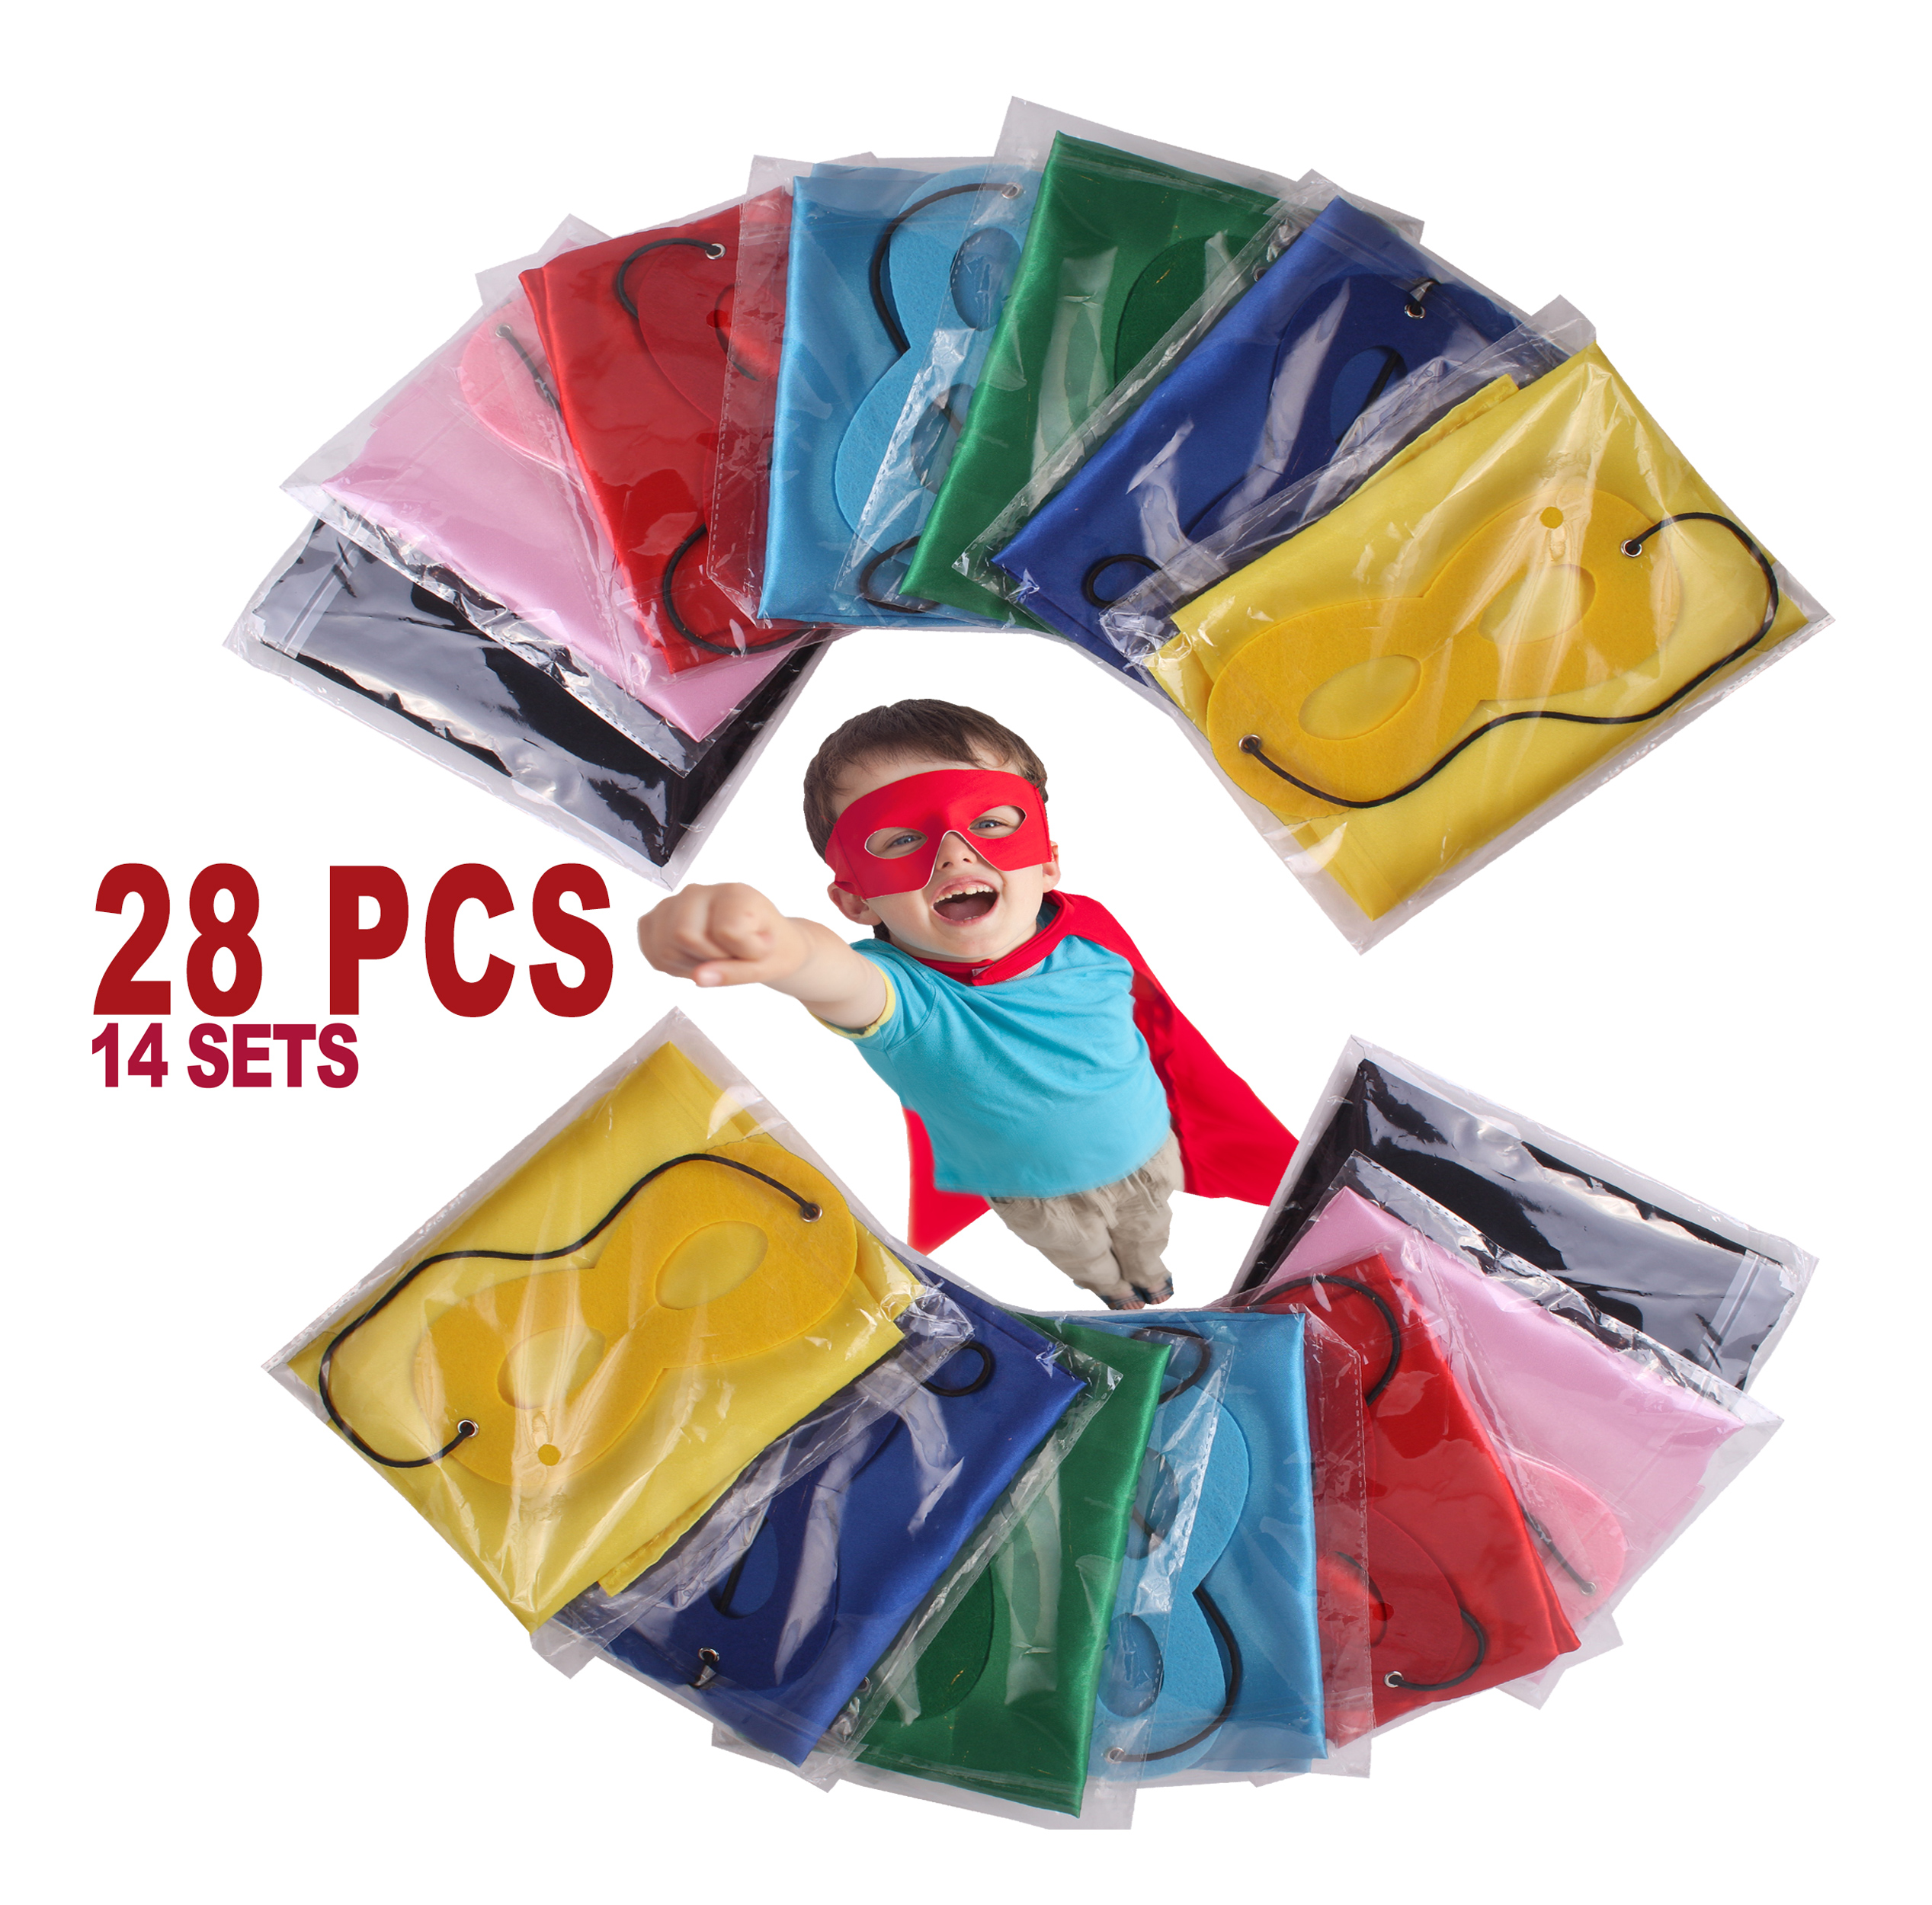 Child Superhero Costume, Cape and Mask Set for Kids, Birthday Party DIY Children, Party Supplies and Favors